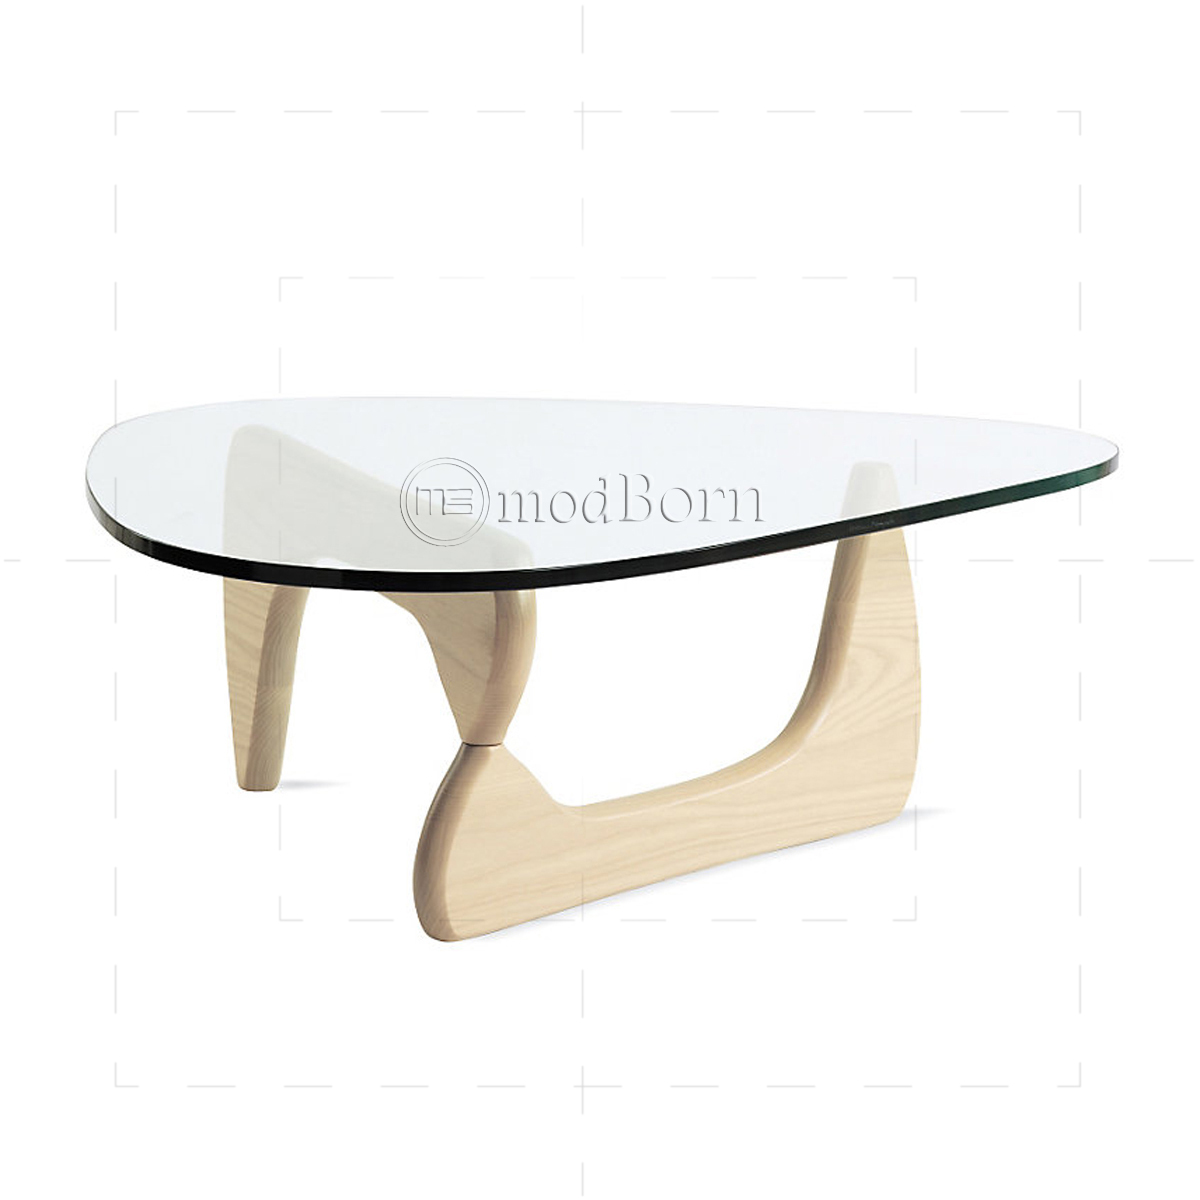 lsamu noguchi style coffee table ashwood. Black Bedroom Furniture Sets. Home Design Ideas